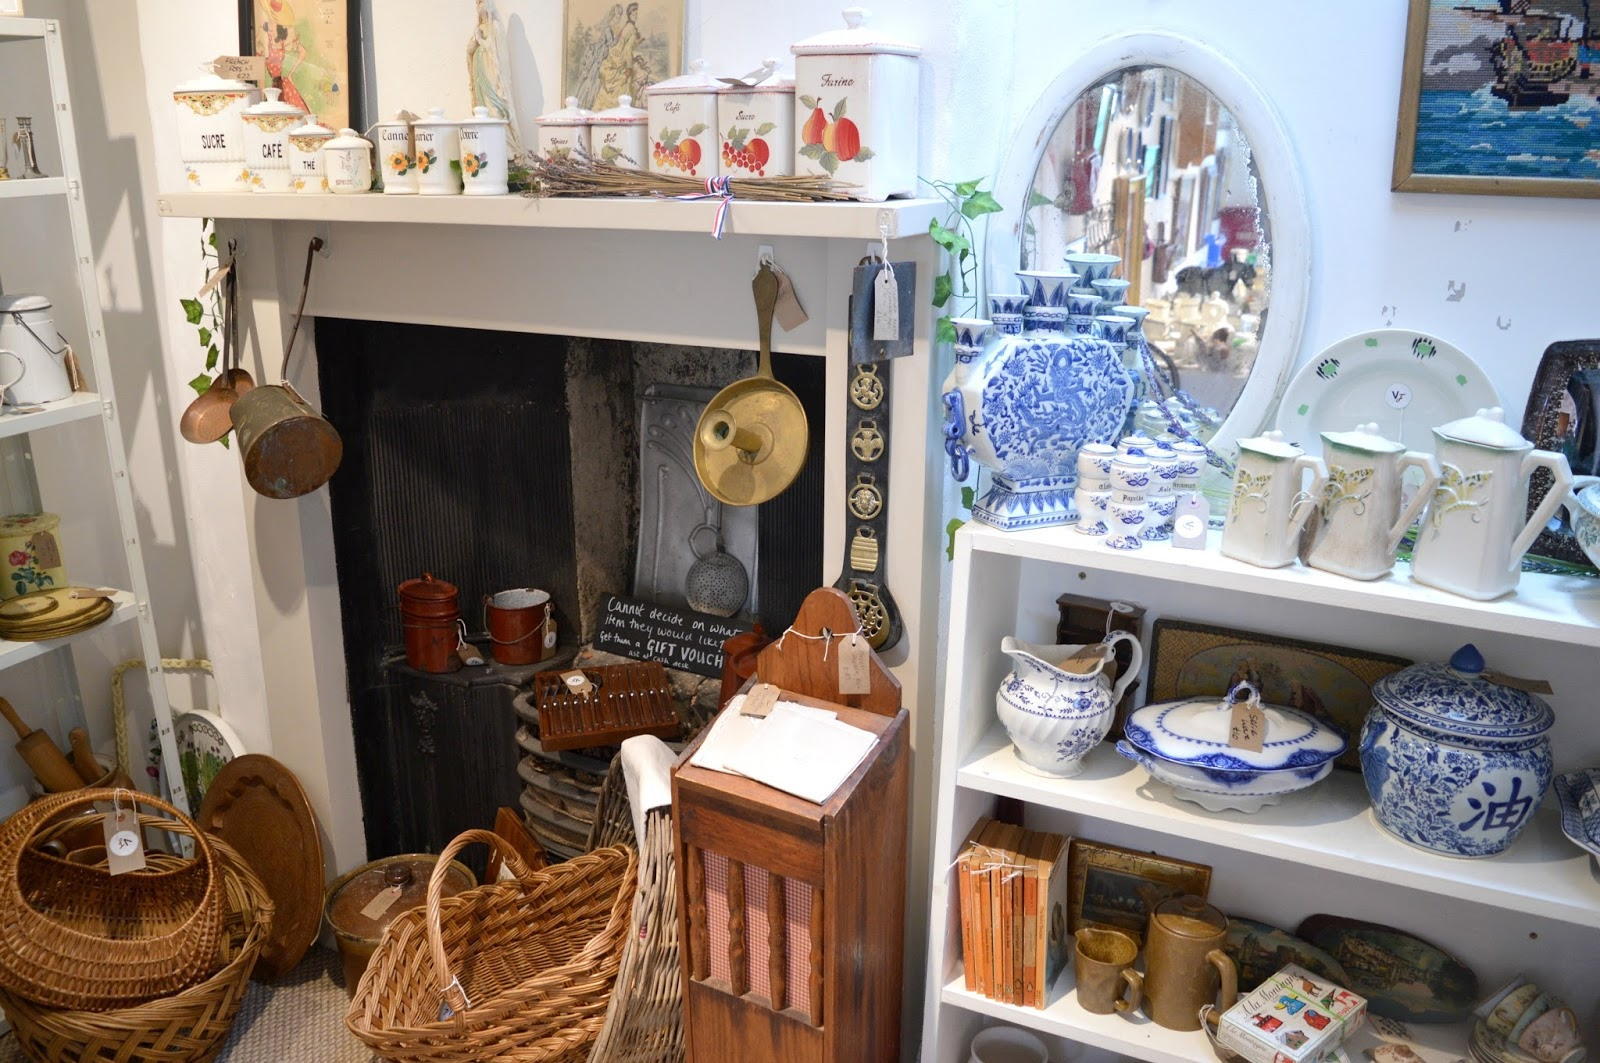 Hexham Northumberland - The Vintage Emporium